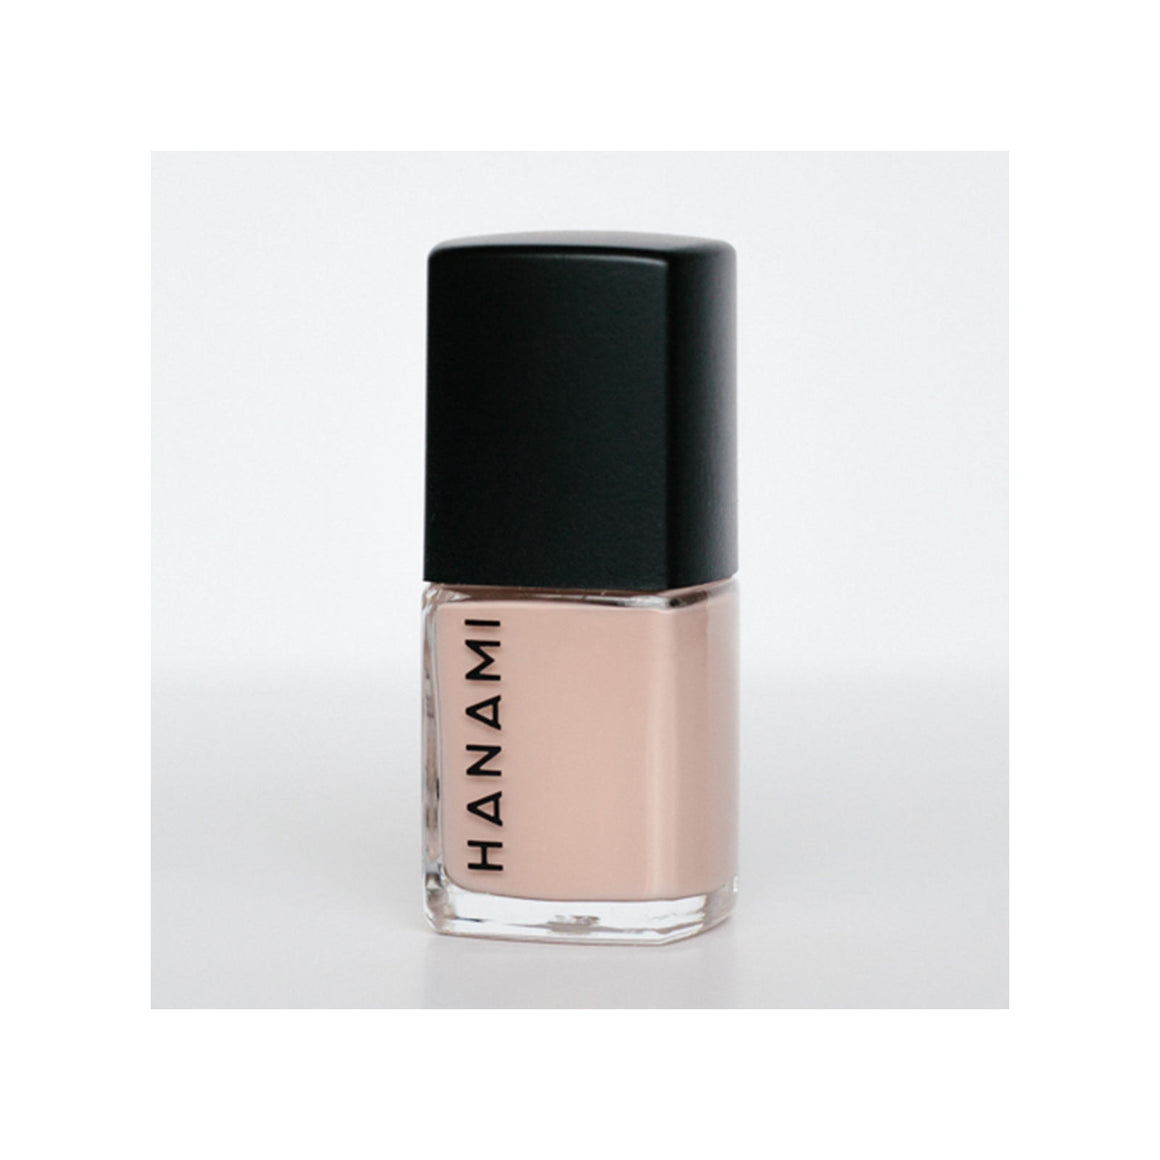 Hanami Cosmetics Nail Polish - Soft Delay